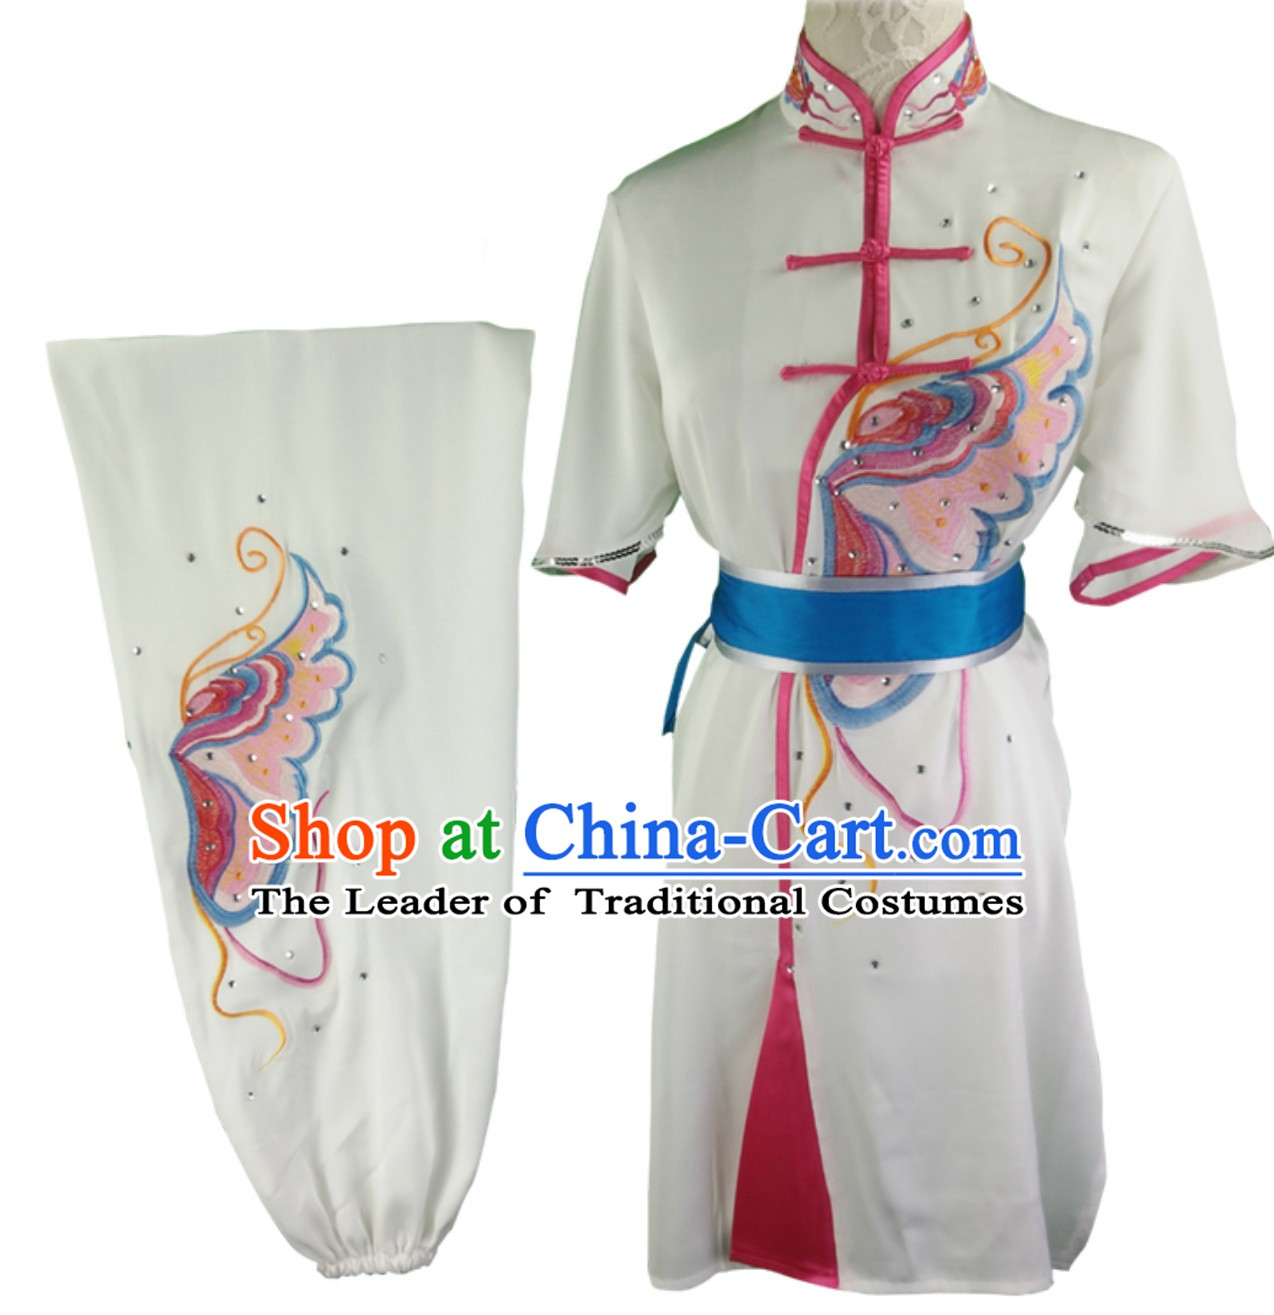 Custom Made Top Mulan Kung Fu Jacket Kung Fu Shirt Kung Fu Suits and Uniforms Chinese Jacket Martial Arts Suits Competition Clothing for Women